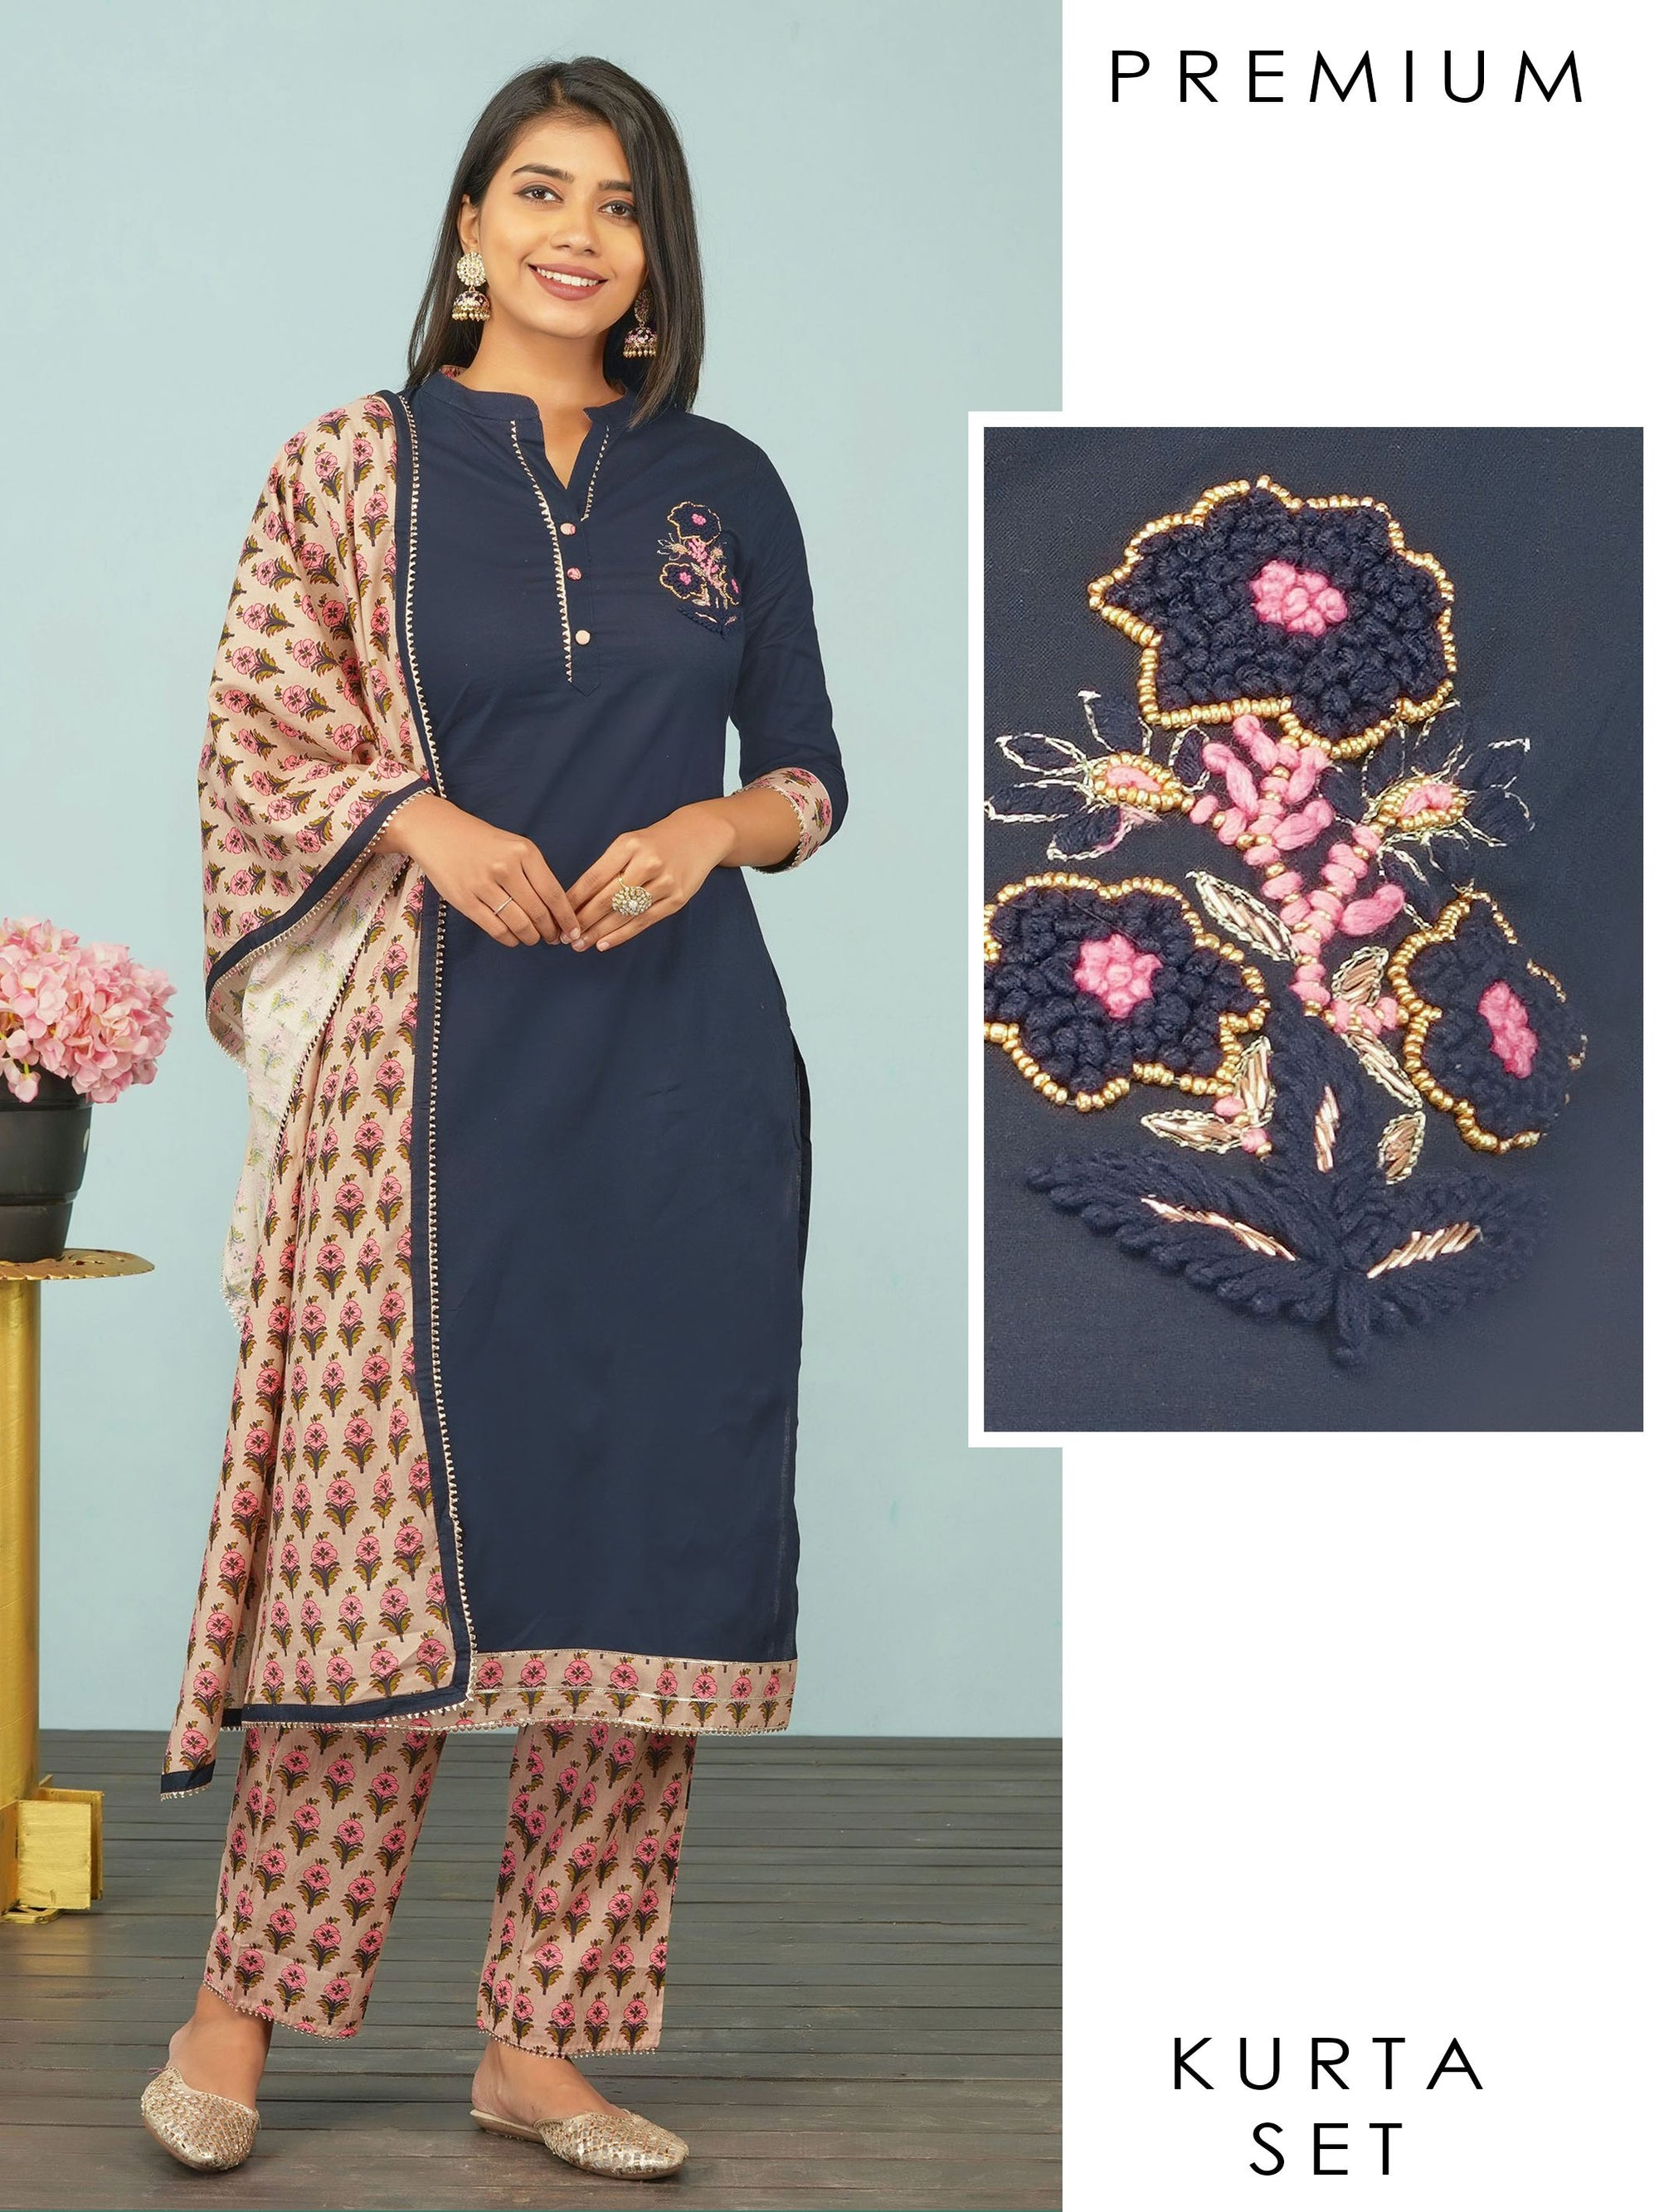 French Knot Embroidered Zardosi Embellished Kurti, Floral Pant & Dupatta Set - Navy Blue